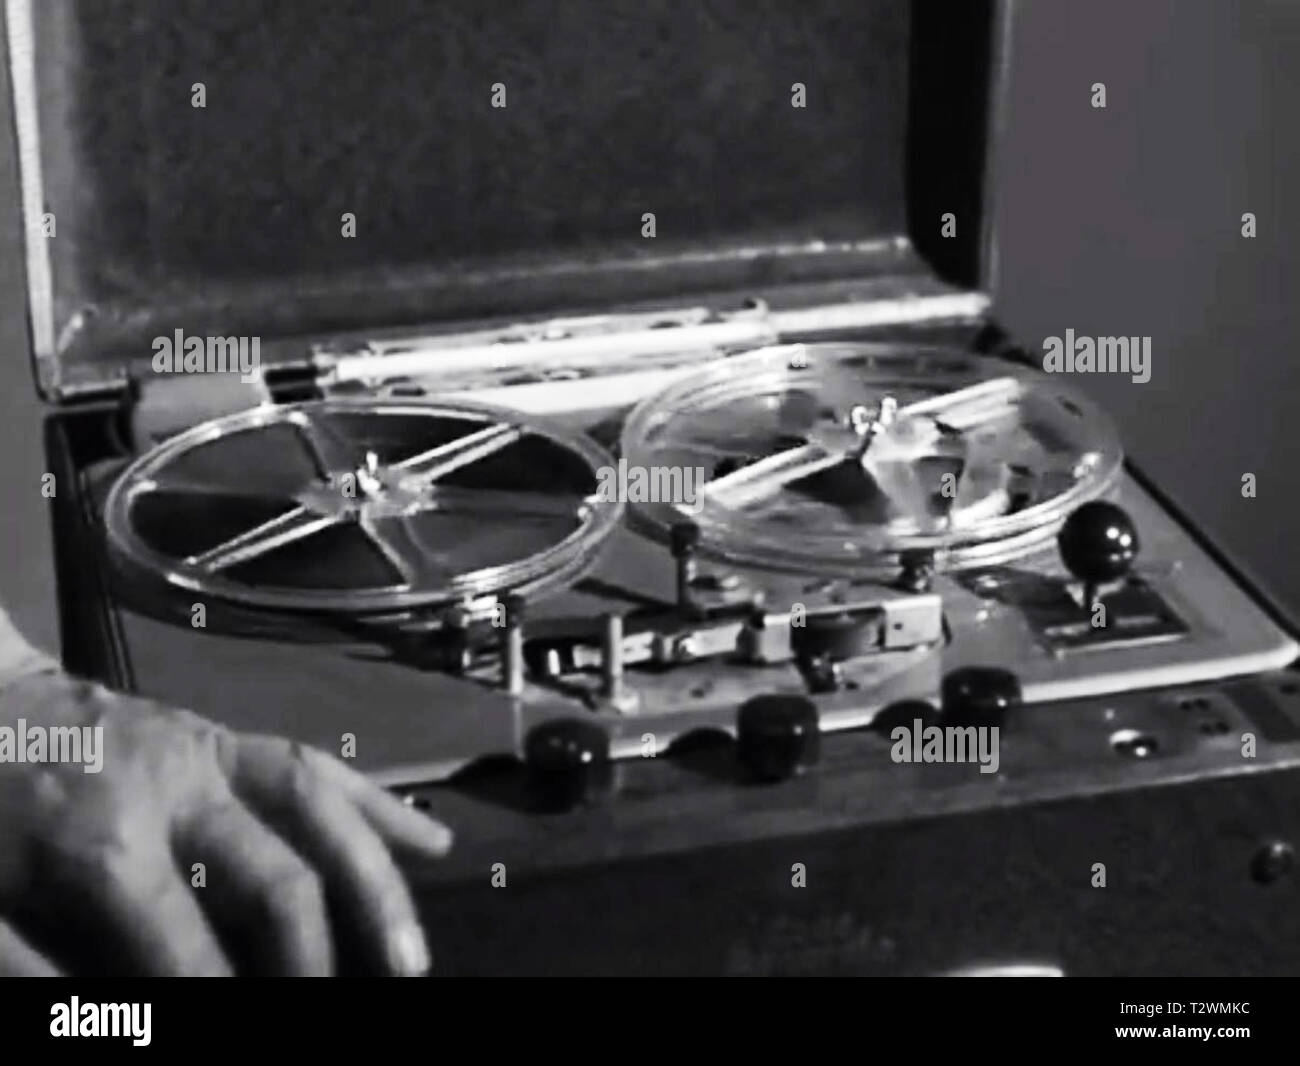 Reel to reel player - Stock Image